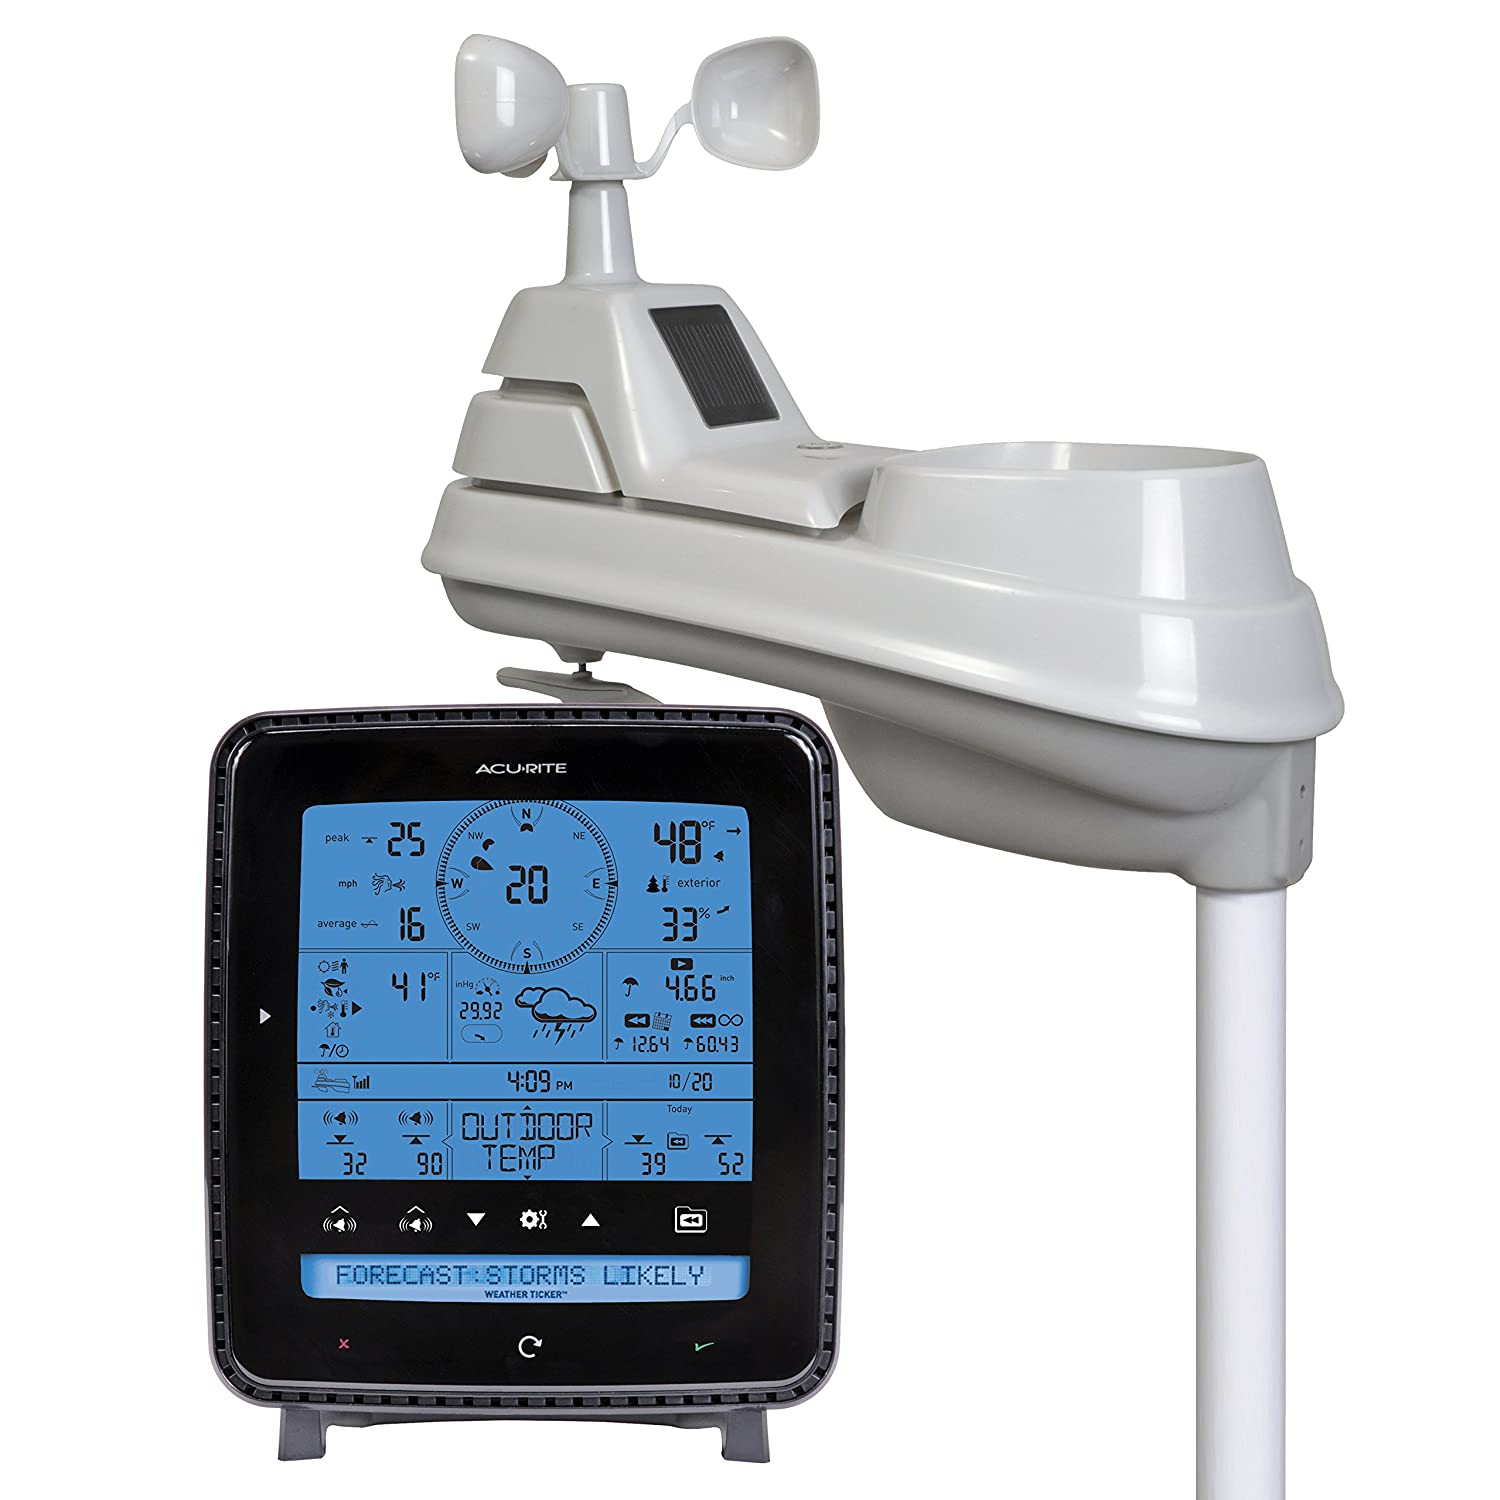 Amazon.com: AcuRite 01500 Wireless Weather Station with Wind and Rain  Sensor: Home & Kitchen - Amazon.com: AcuRite 01500 Wireless Weather Station With Wind And